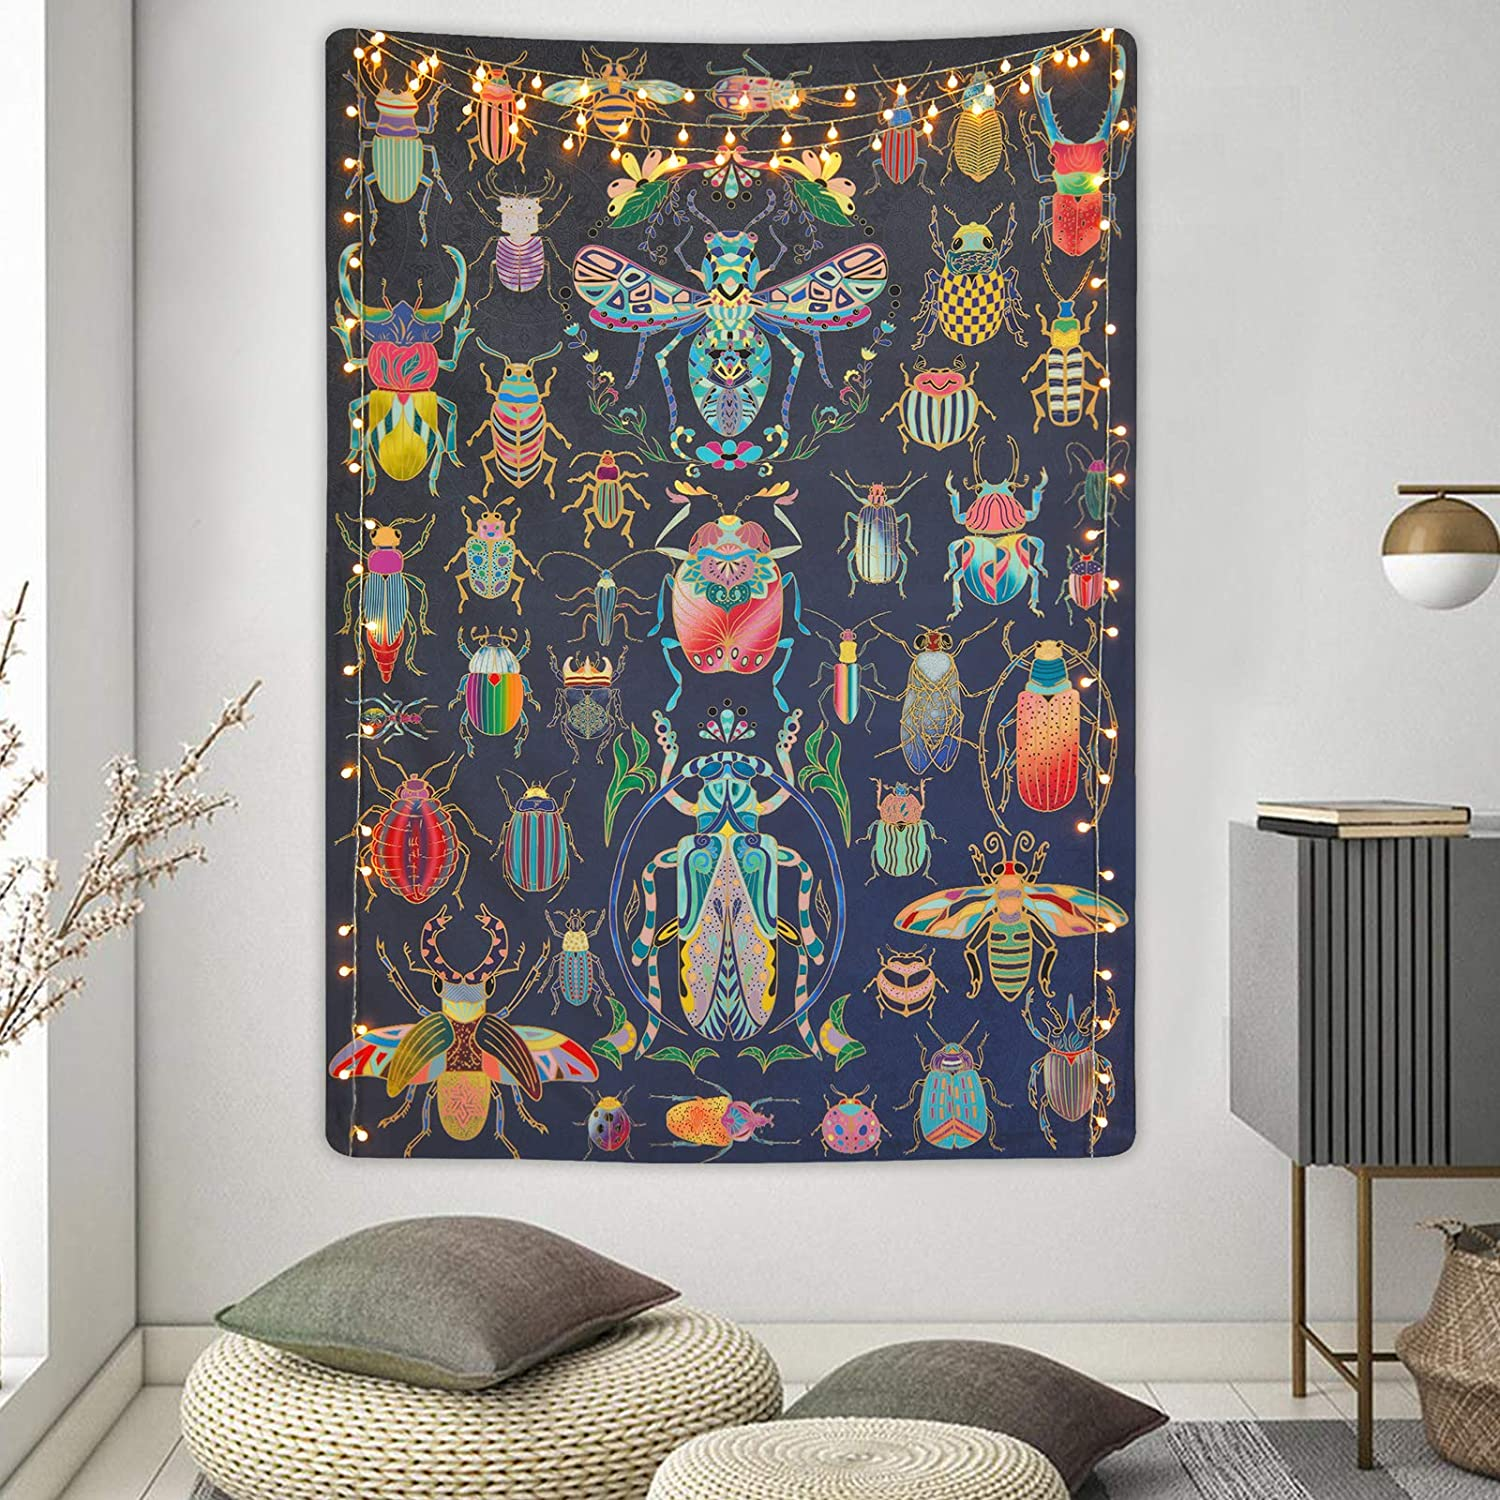 Lyacmy Bugs Tapestry Insect Tapestry Beetles and Bees Tapestries Illustrative Reference Chart Tapestry Wall Hanging for Room (59.1 x 82.7 inches)